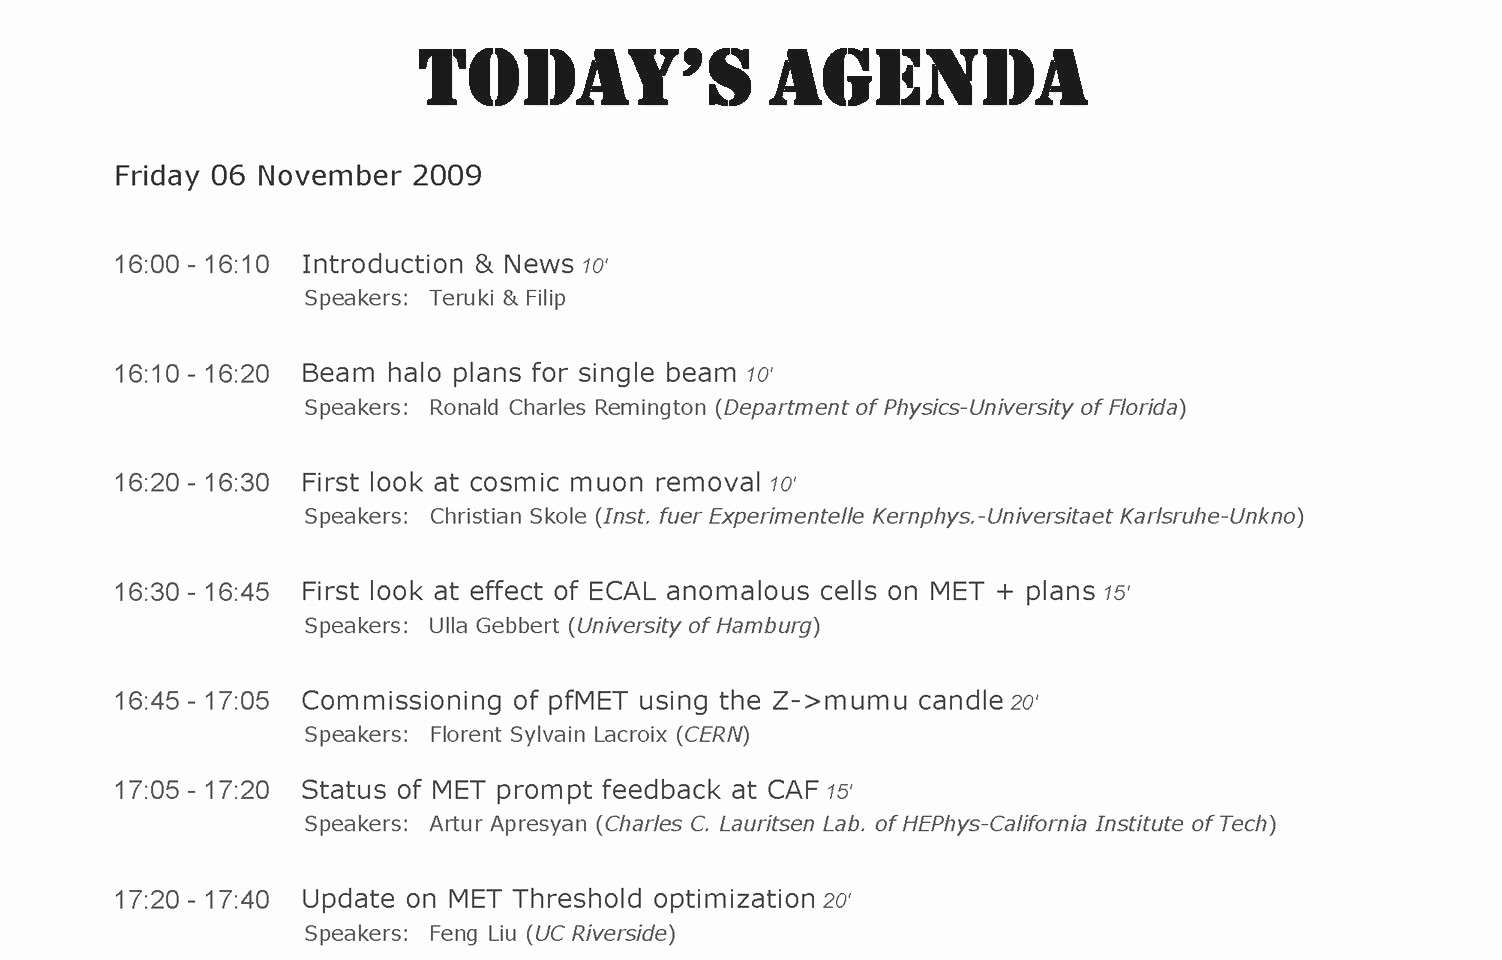 Agenda format for A Meeting New Agenda Meeting format Mughals